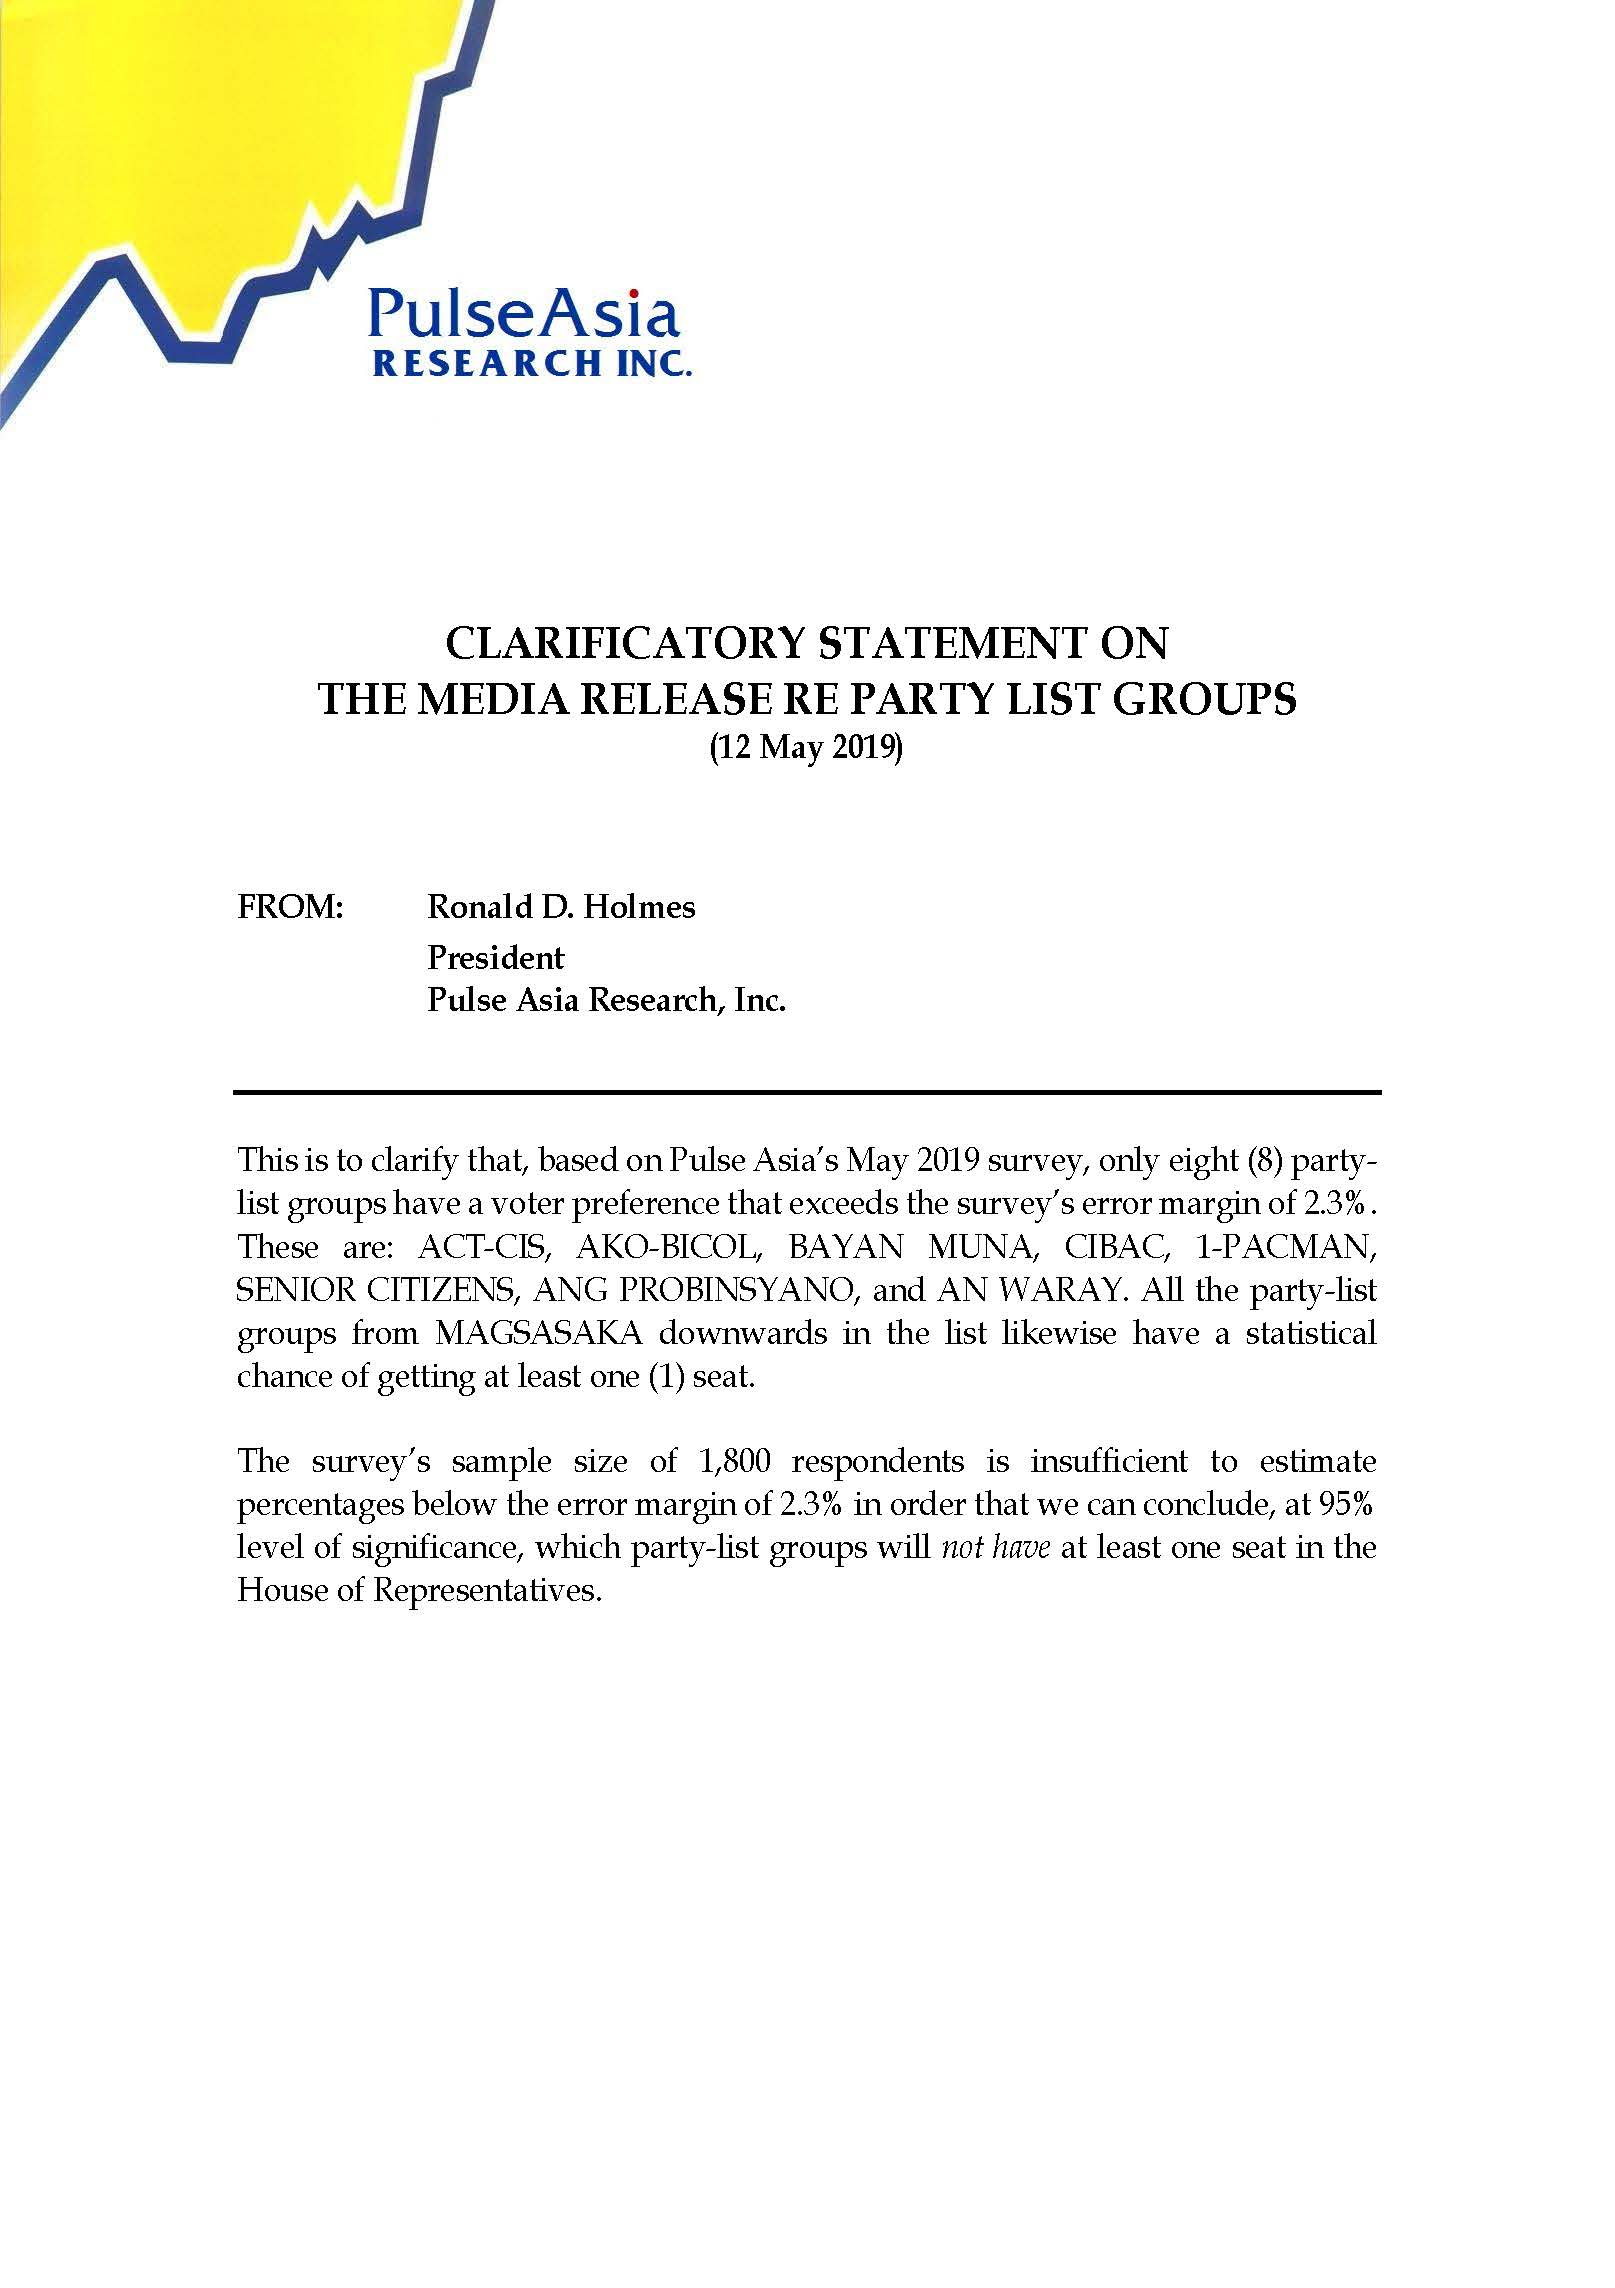 Clarificatory Statement on the Media Release Re Party List Groups